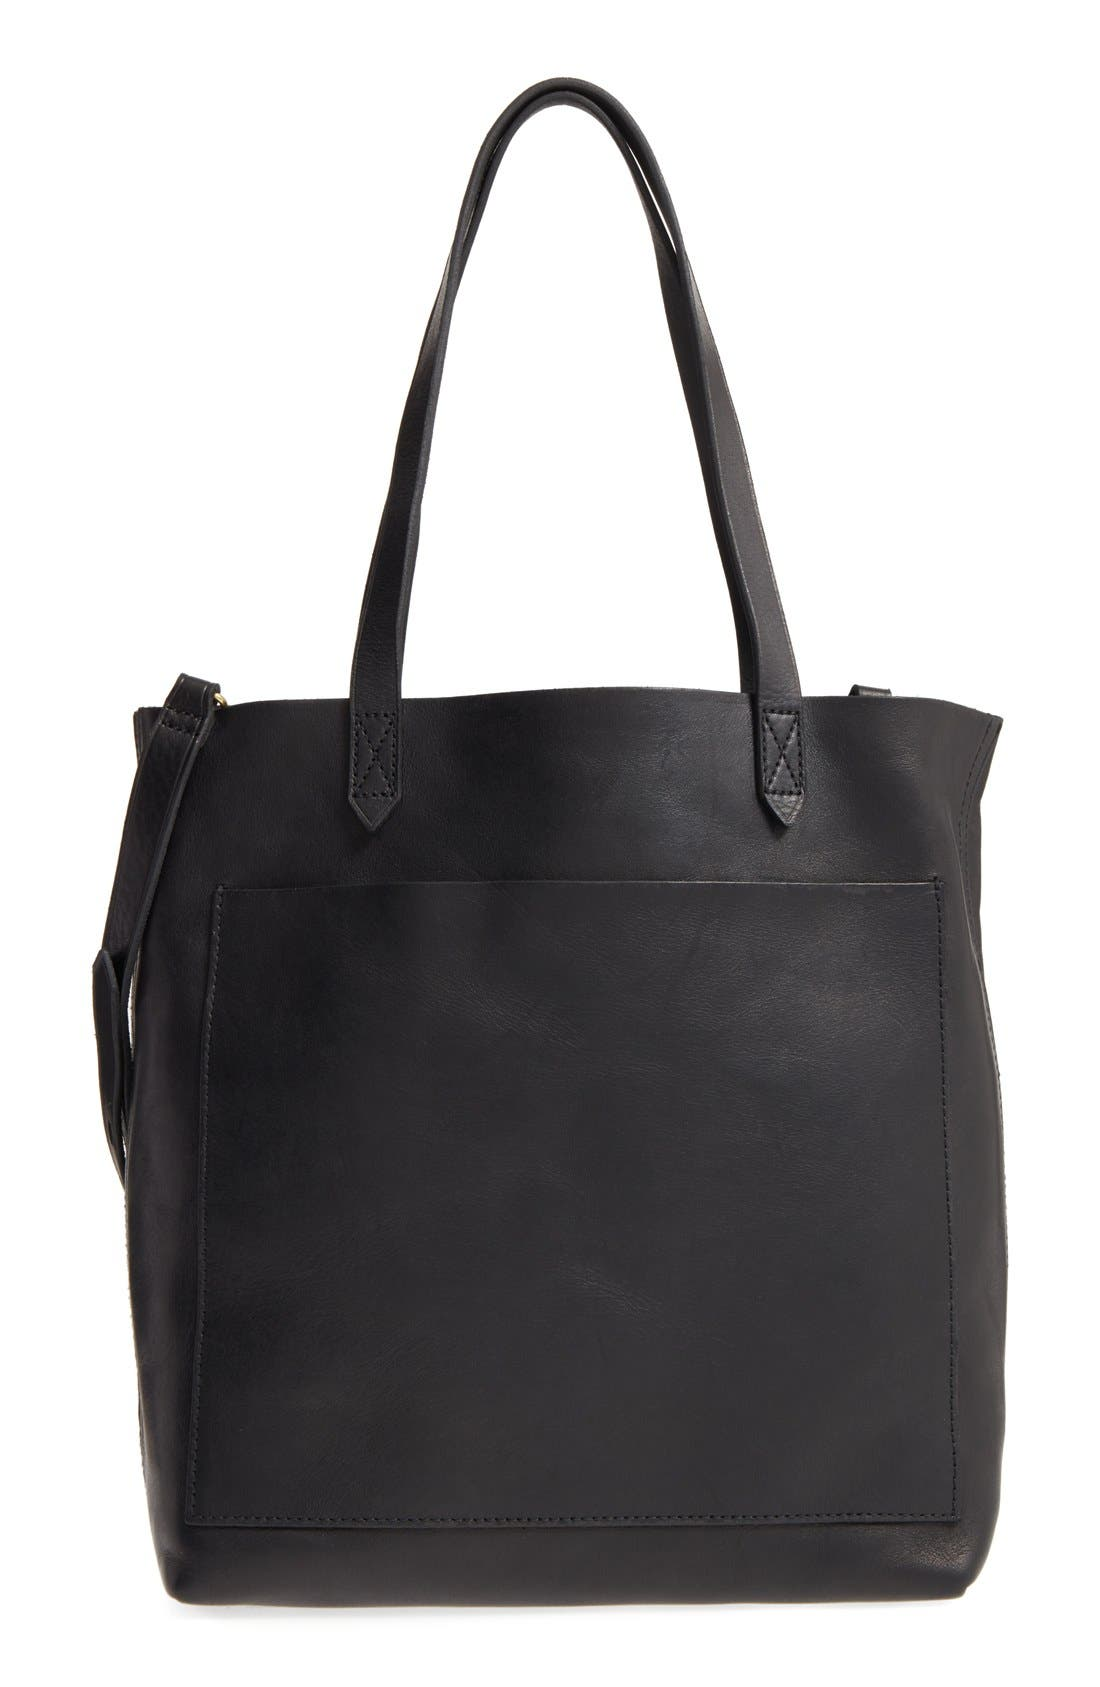 Medium Leather Transport Tote,                             Main thumbnail 13, color,